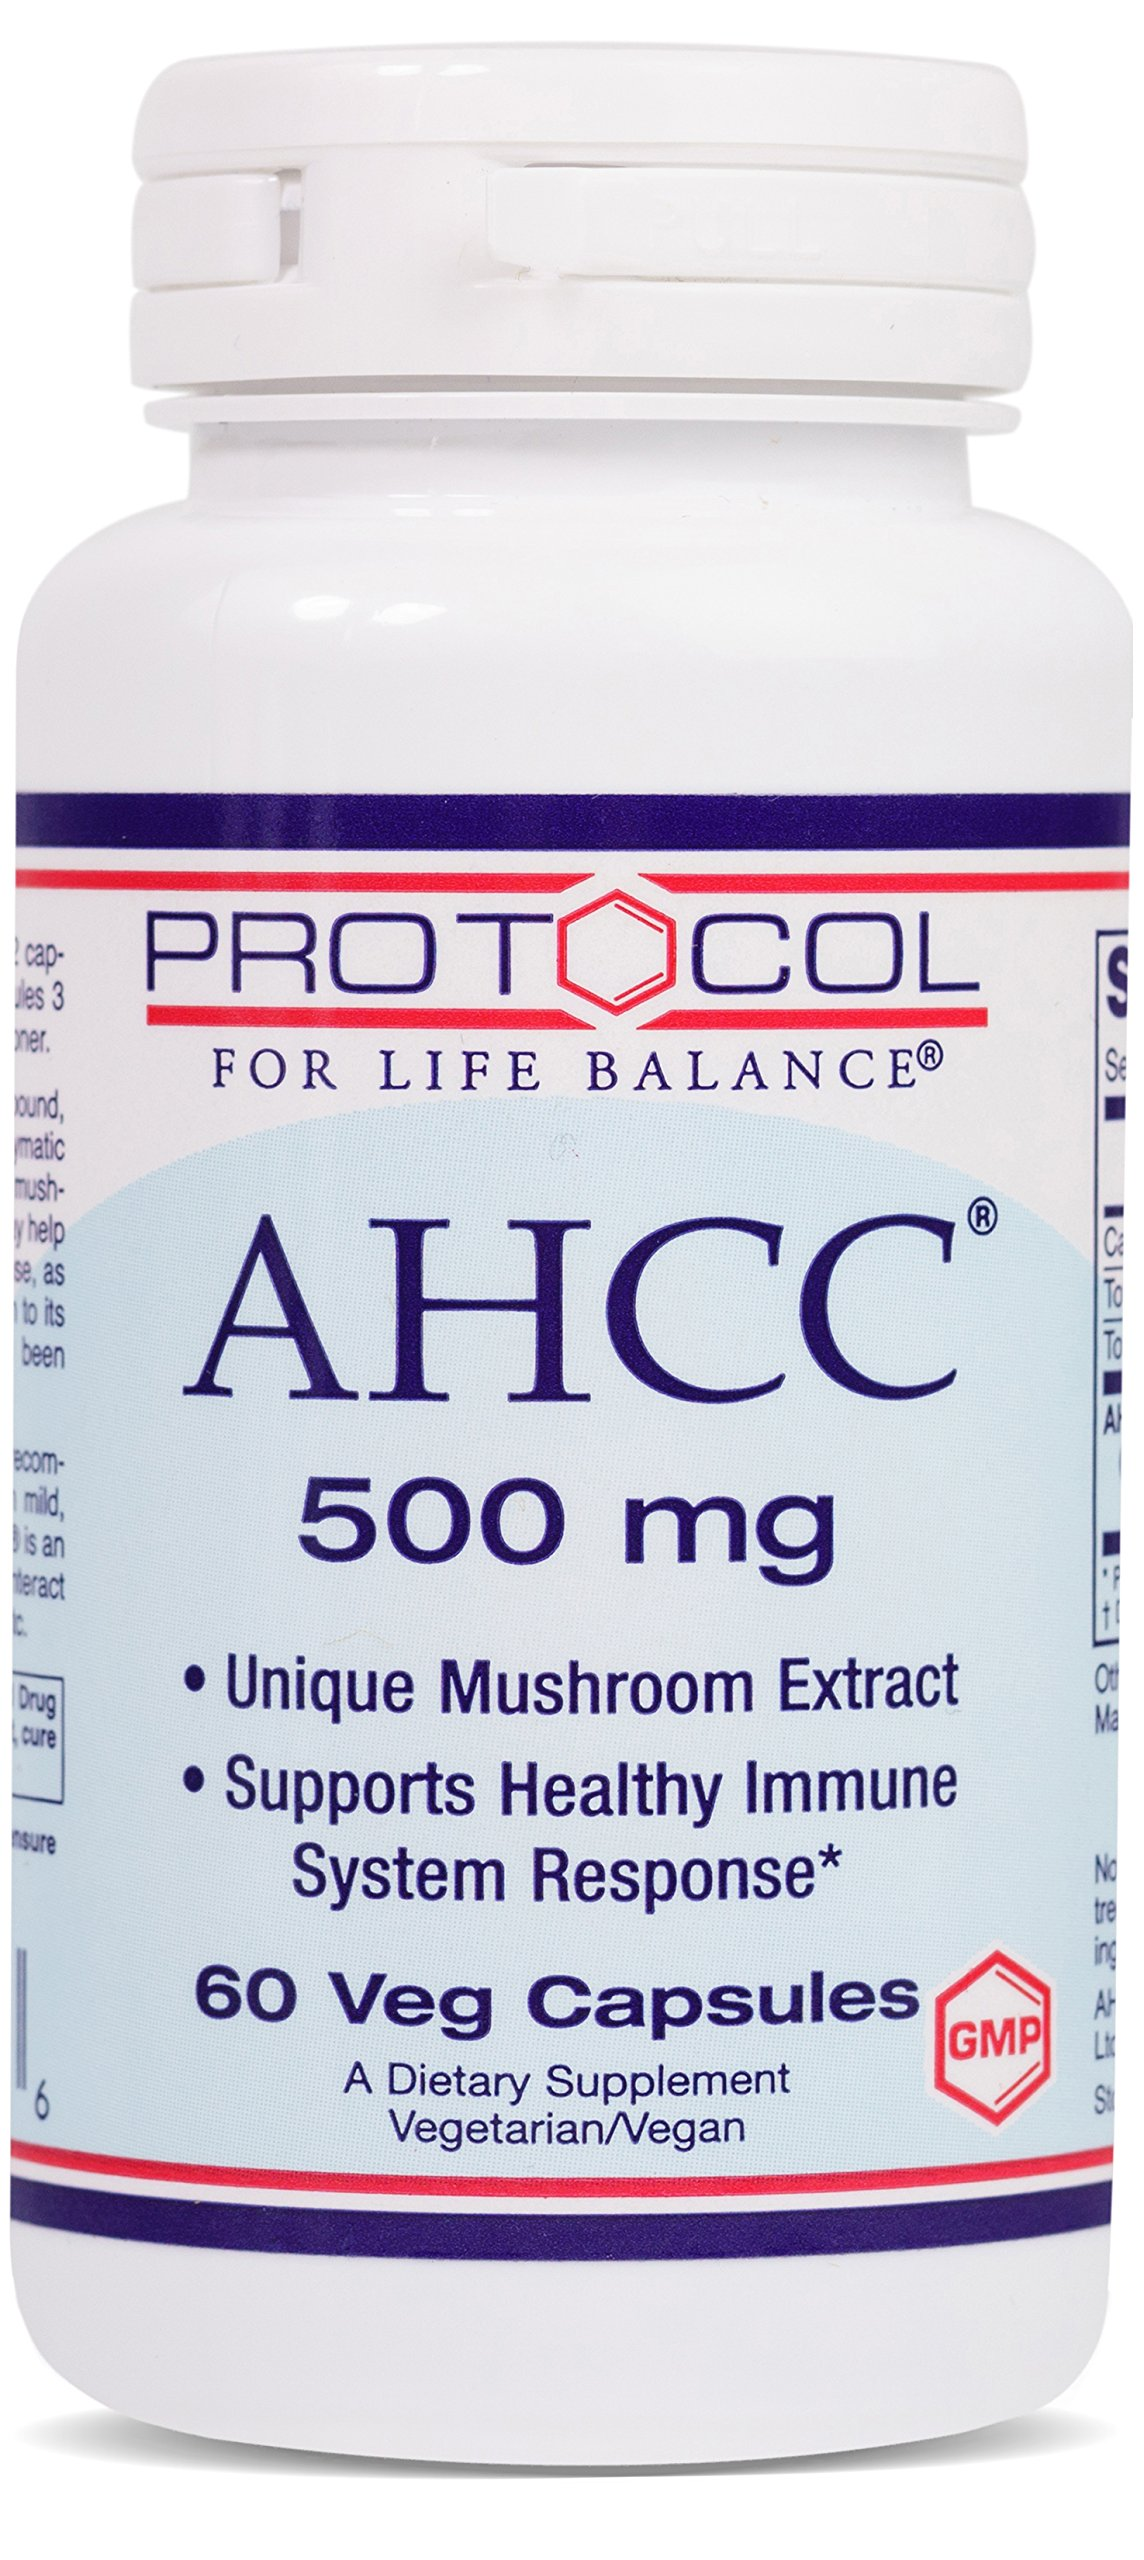 Protocol For Life Balance - AHCC 500 mg - Mushroom Extract to Support Healthy Immune System Response, Rich in Antioxidants, Helps Cardiovascular System Health, - 60 Veg Capsules